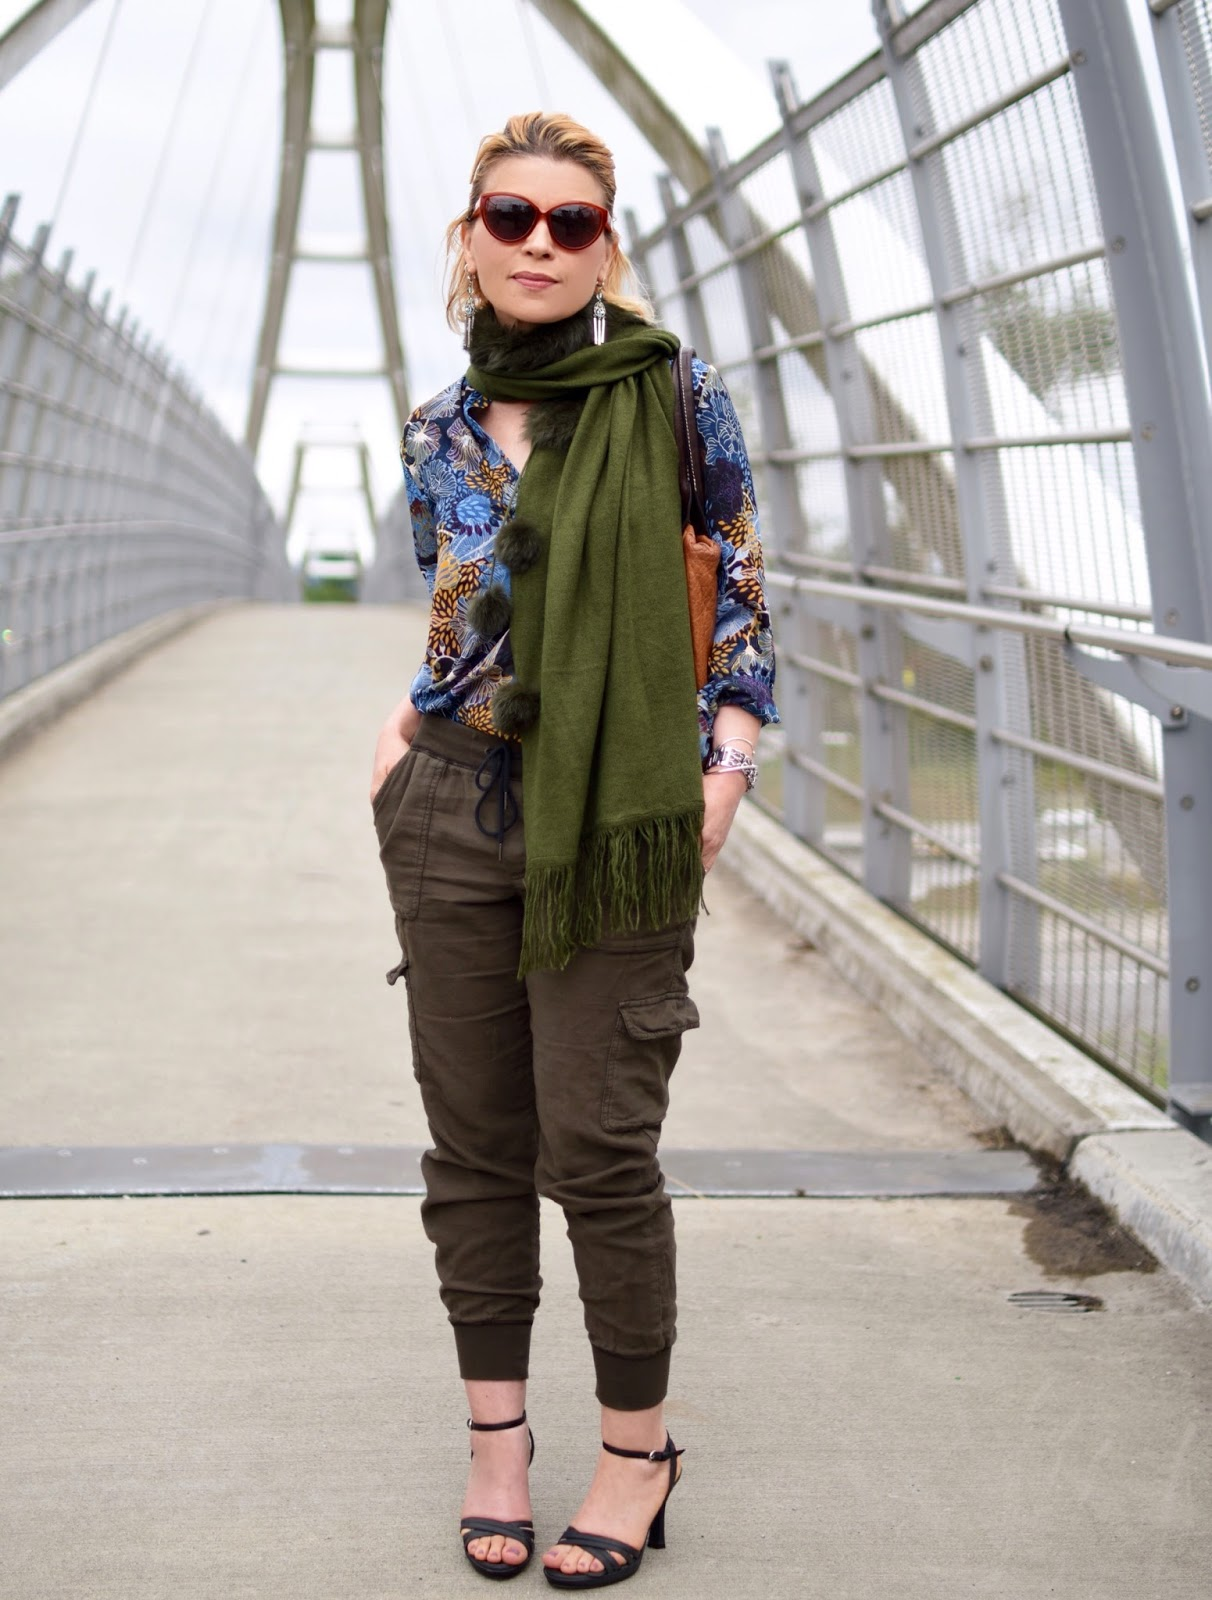 styling slouchy cargo pants with a floral blouse, pompom scarf, and ankle-strap sandals